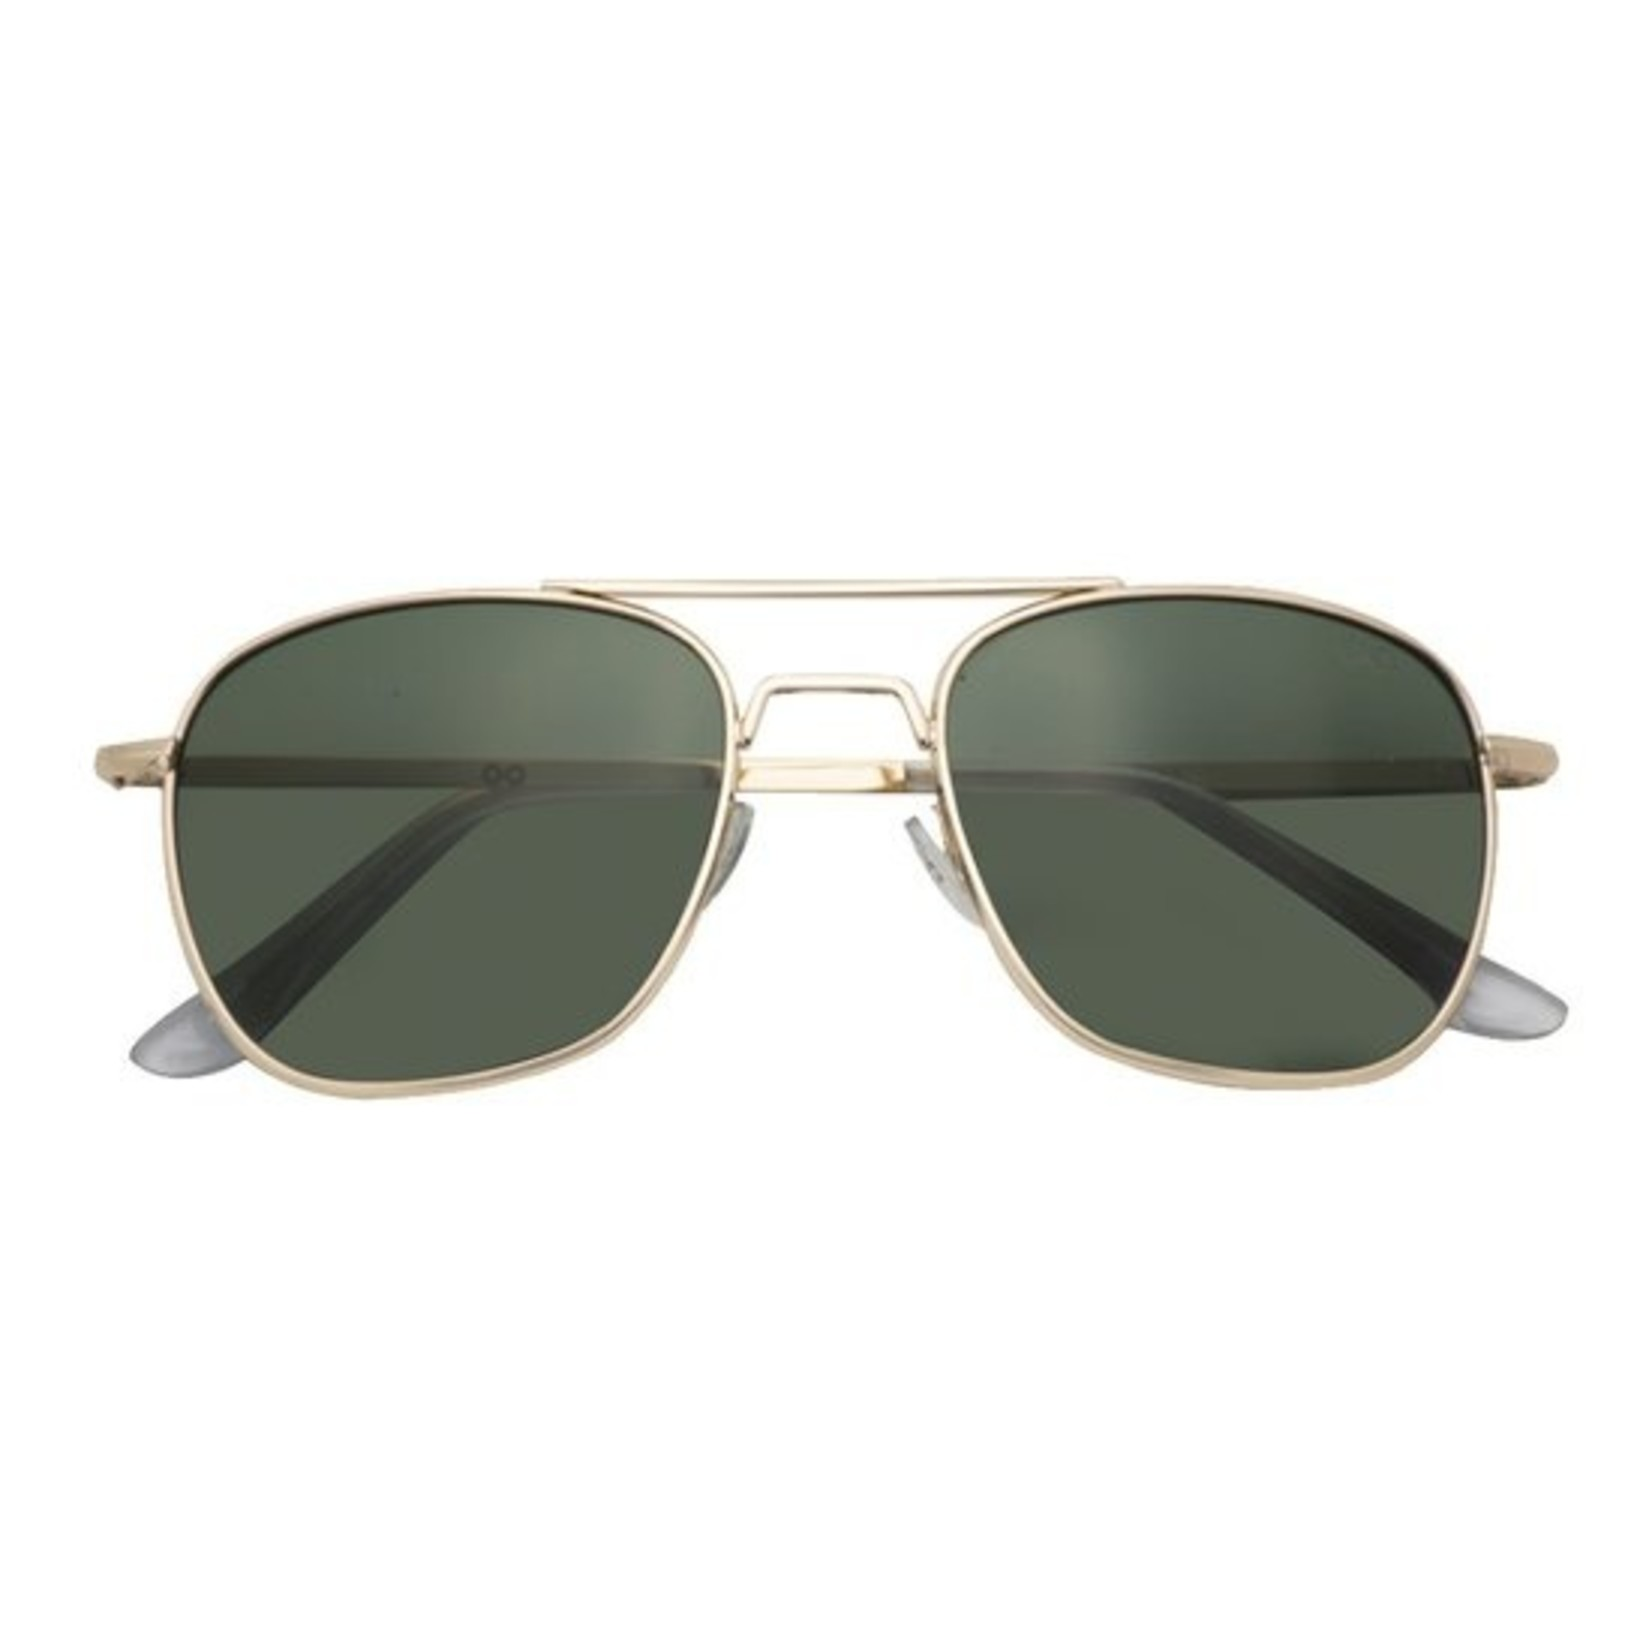 Croon Sting Satin Gold/Green zonnebril